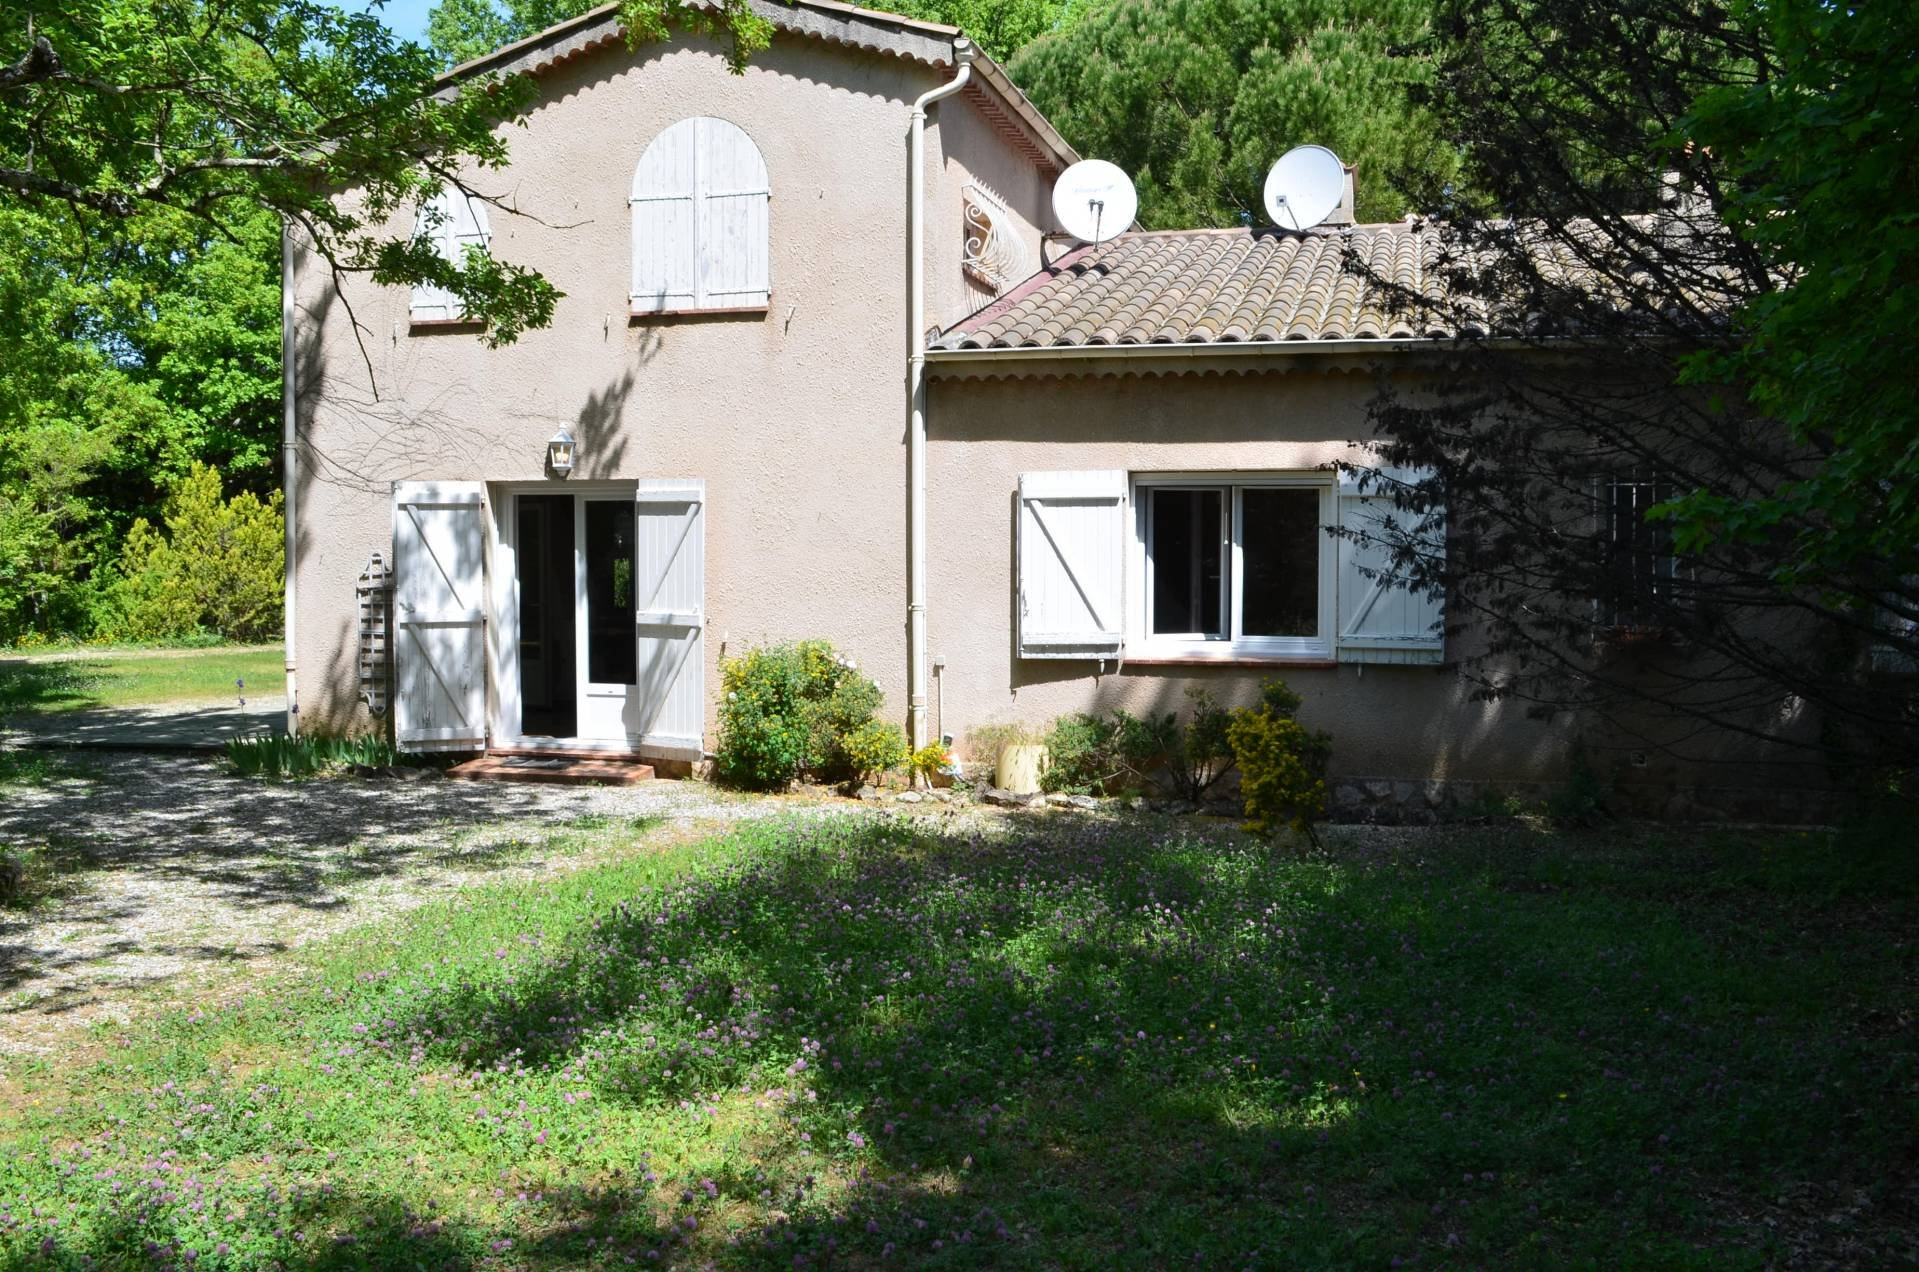 Villa with 5 bedrooms, 1800m² of land